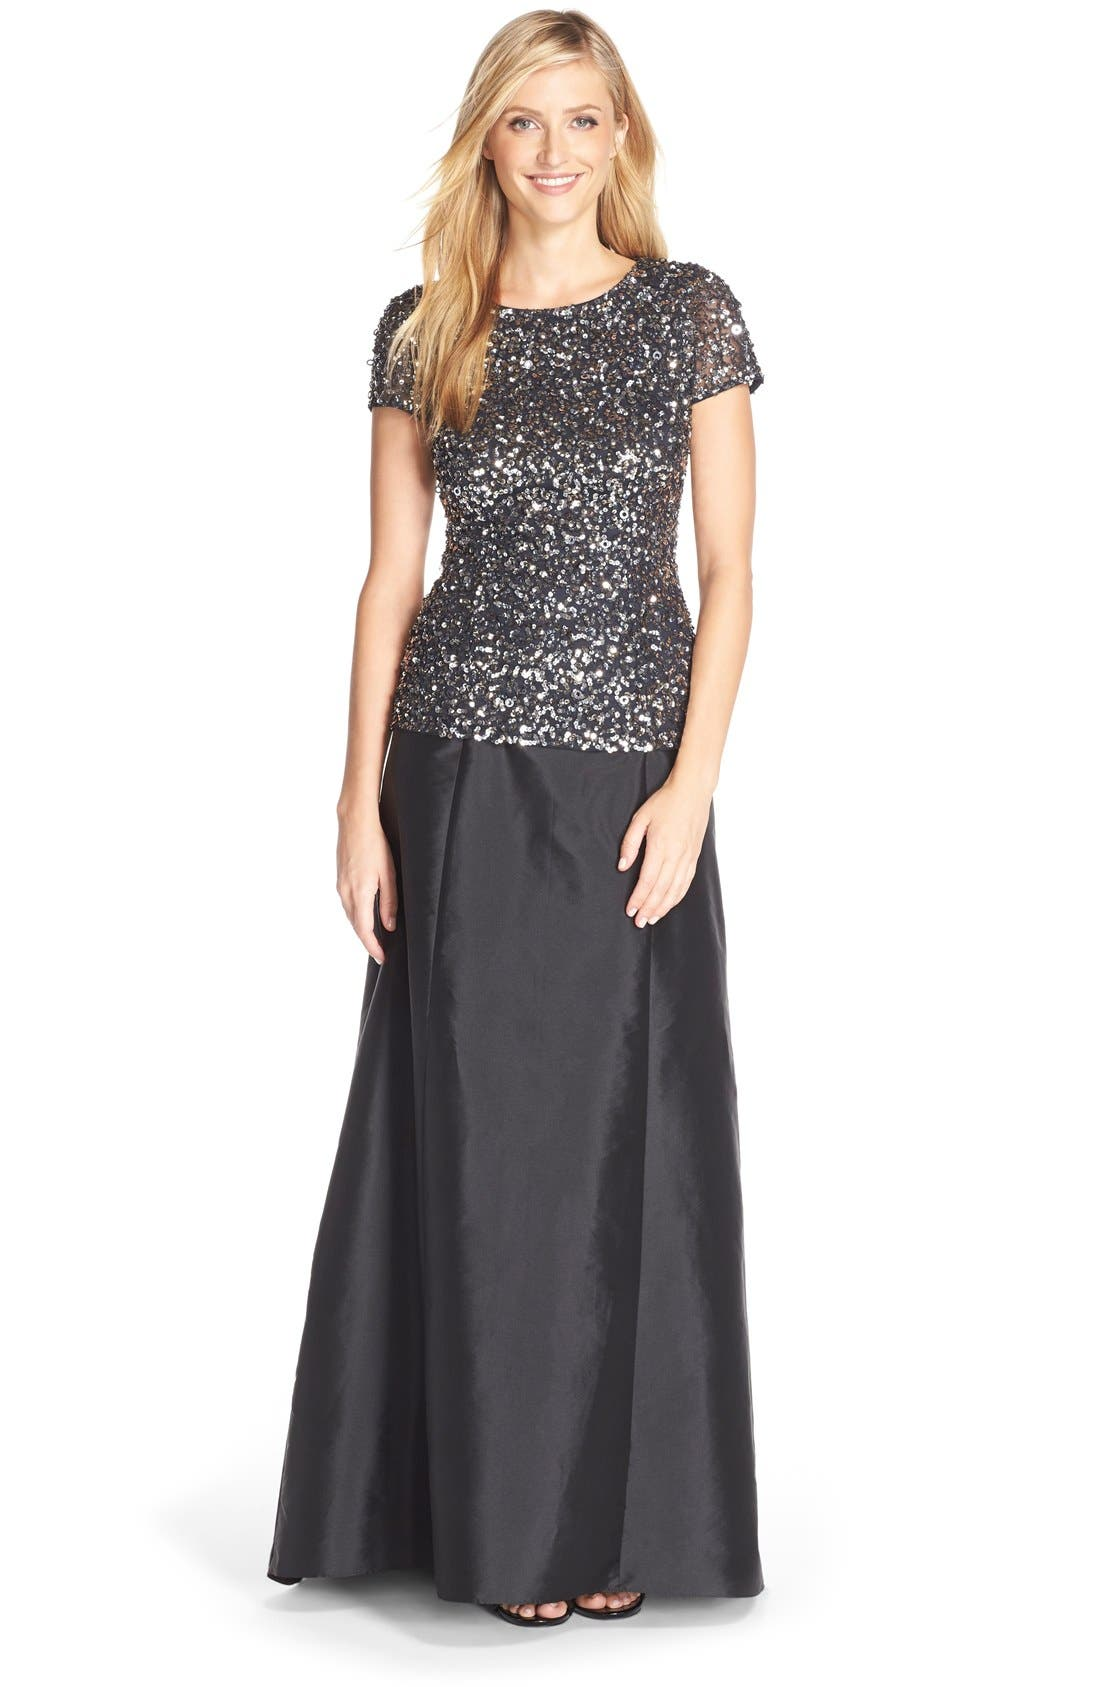 ADRIANNA PAPELL, Sequin Mesh Top, Alternate thumbnail 2, color, 020